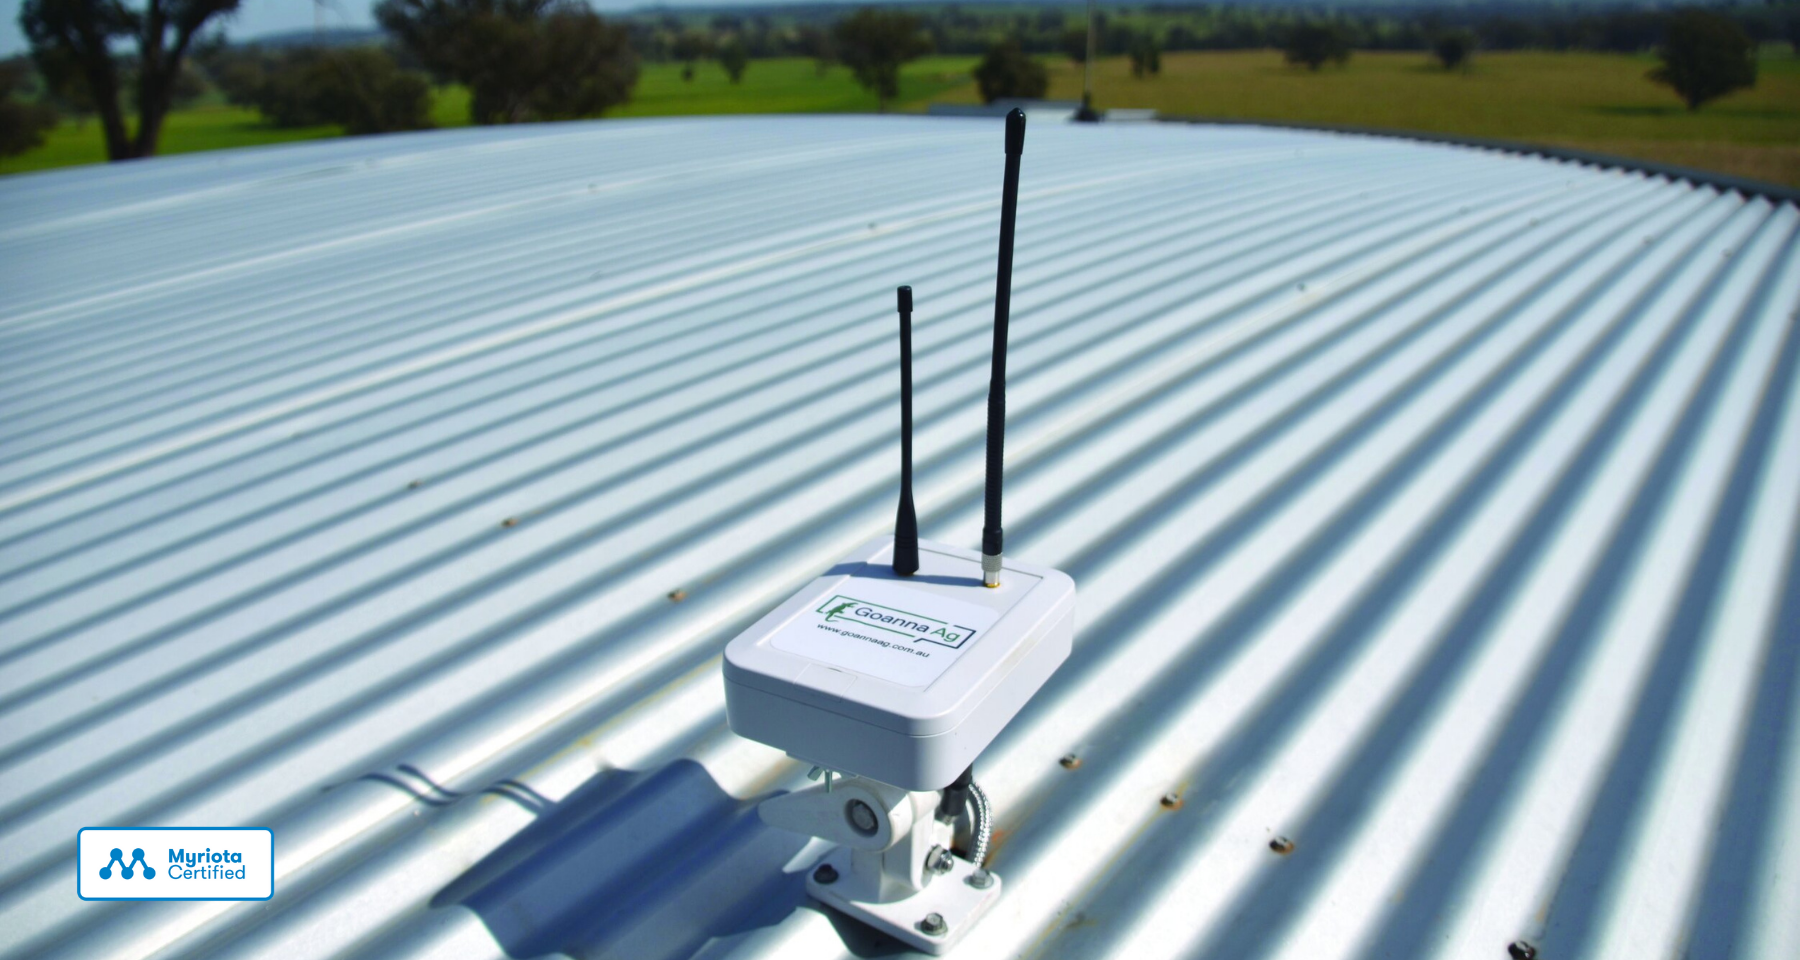 Picture of Goanna Ag's Myriota Certified GoTankSat device for water tank monitoring